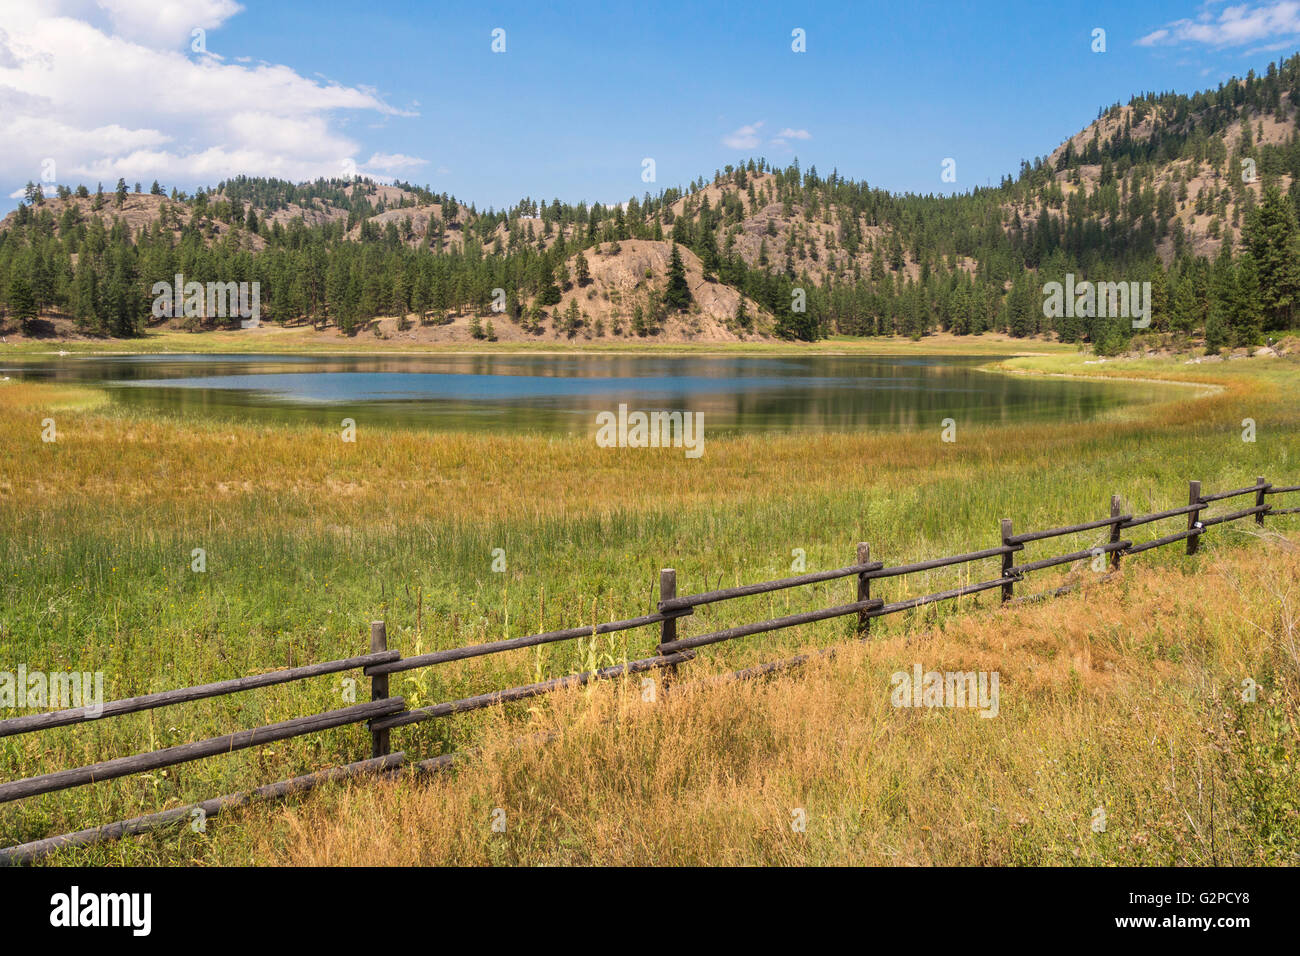 Mahoney Lake is a meromictic saline lake and ecological reserve.  It is alkaline and has no inflow or outflow. - Stock Image